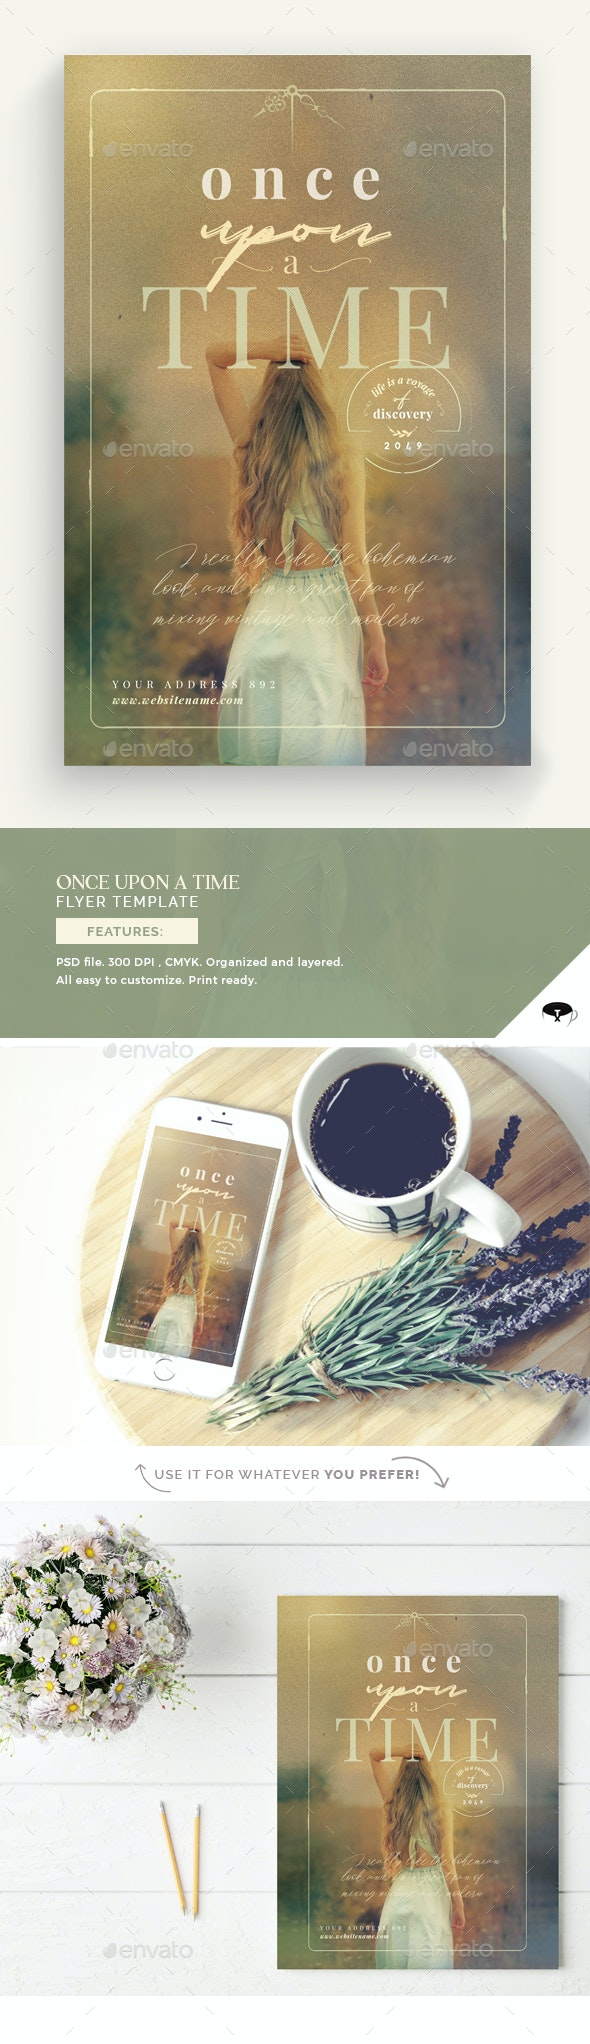 Once Upon A Time Flyer Template - Flyers Print Templates